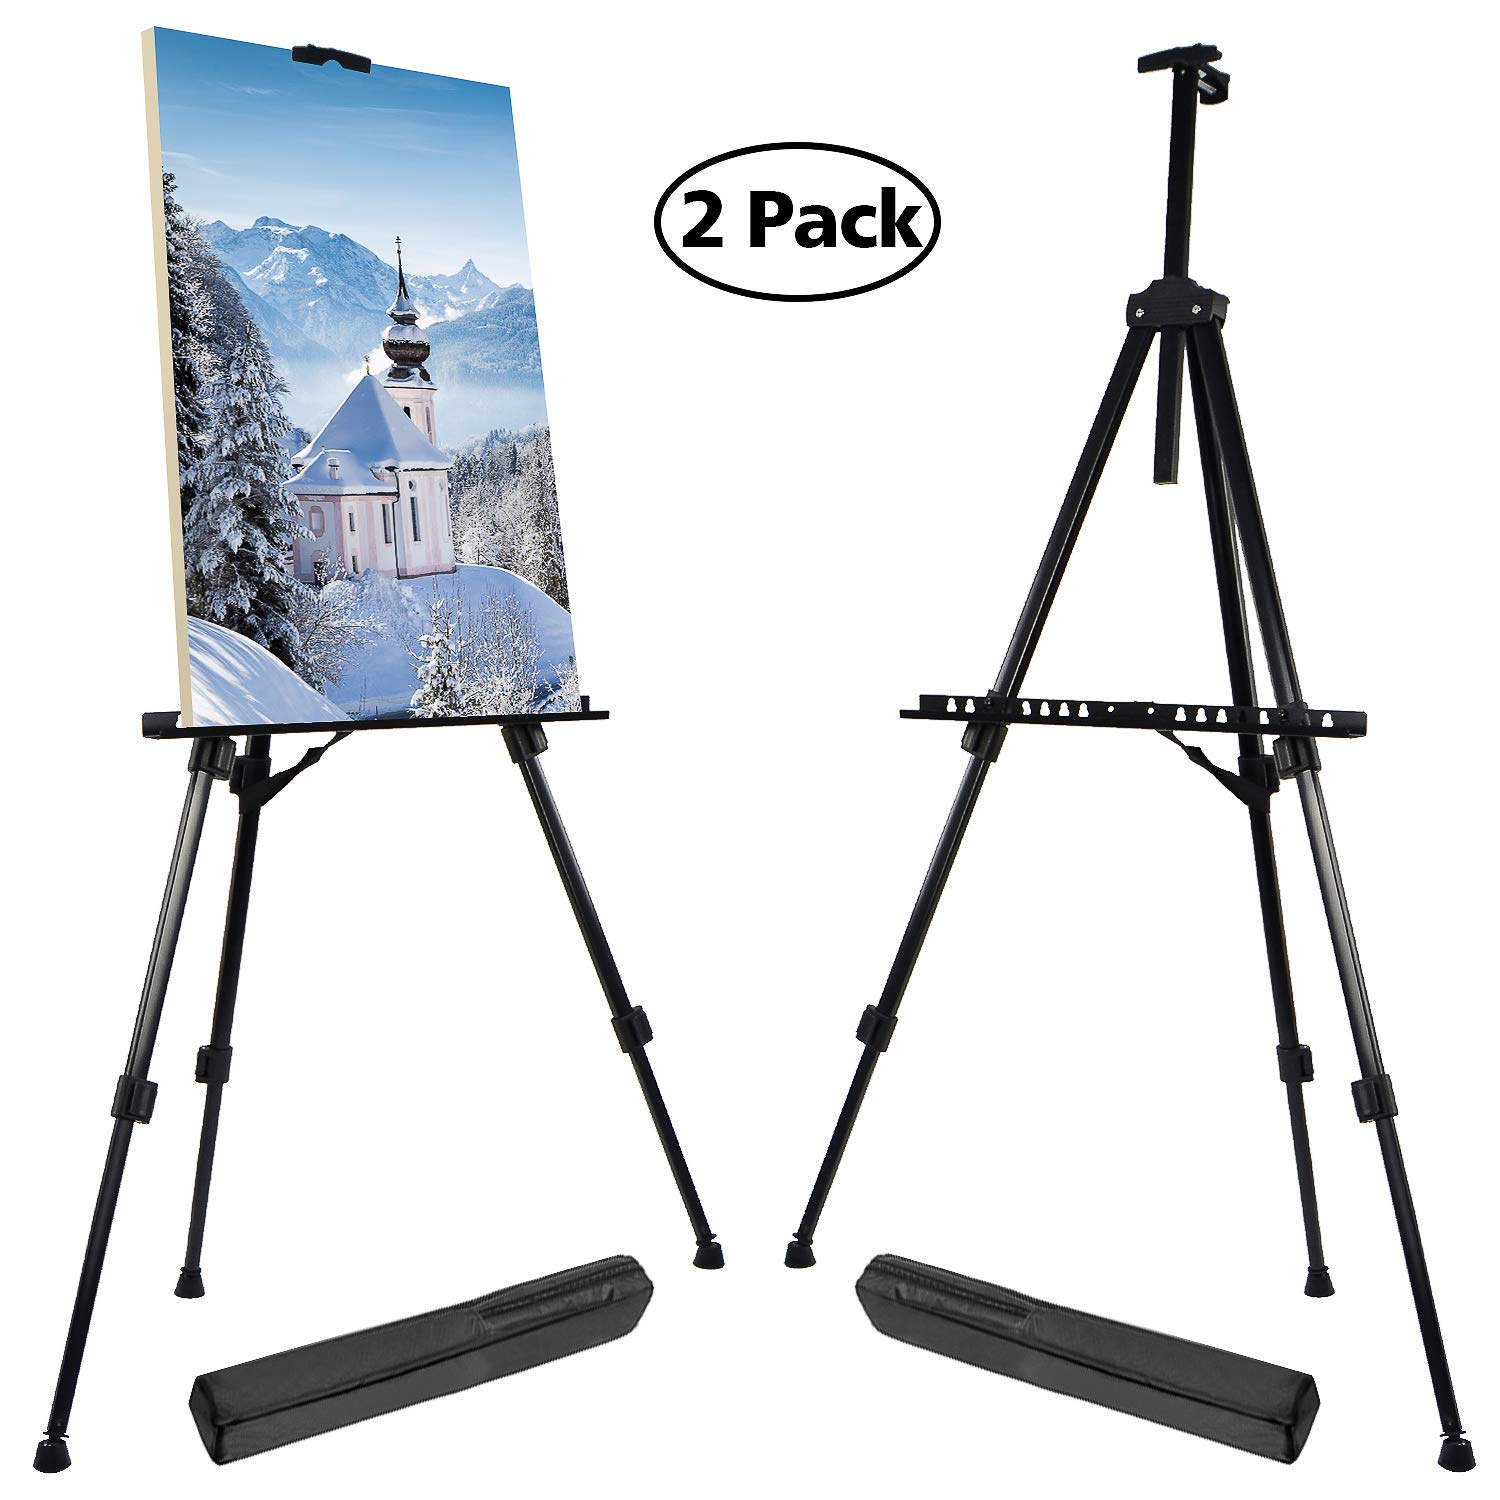 T-SIGN 66 Inches Reinforced Artist Easel Stand, Extra Thick Aluminum Metal Tripod Display Easel 21 to 66 Inches Adjustable Height with Portable Bag for Floor/Table-Top Drawing and Displaying, 2 Pack by T-SIGN